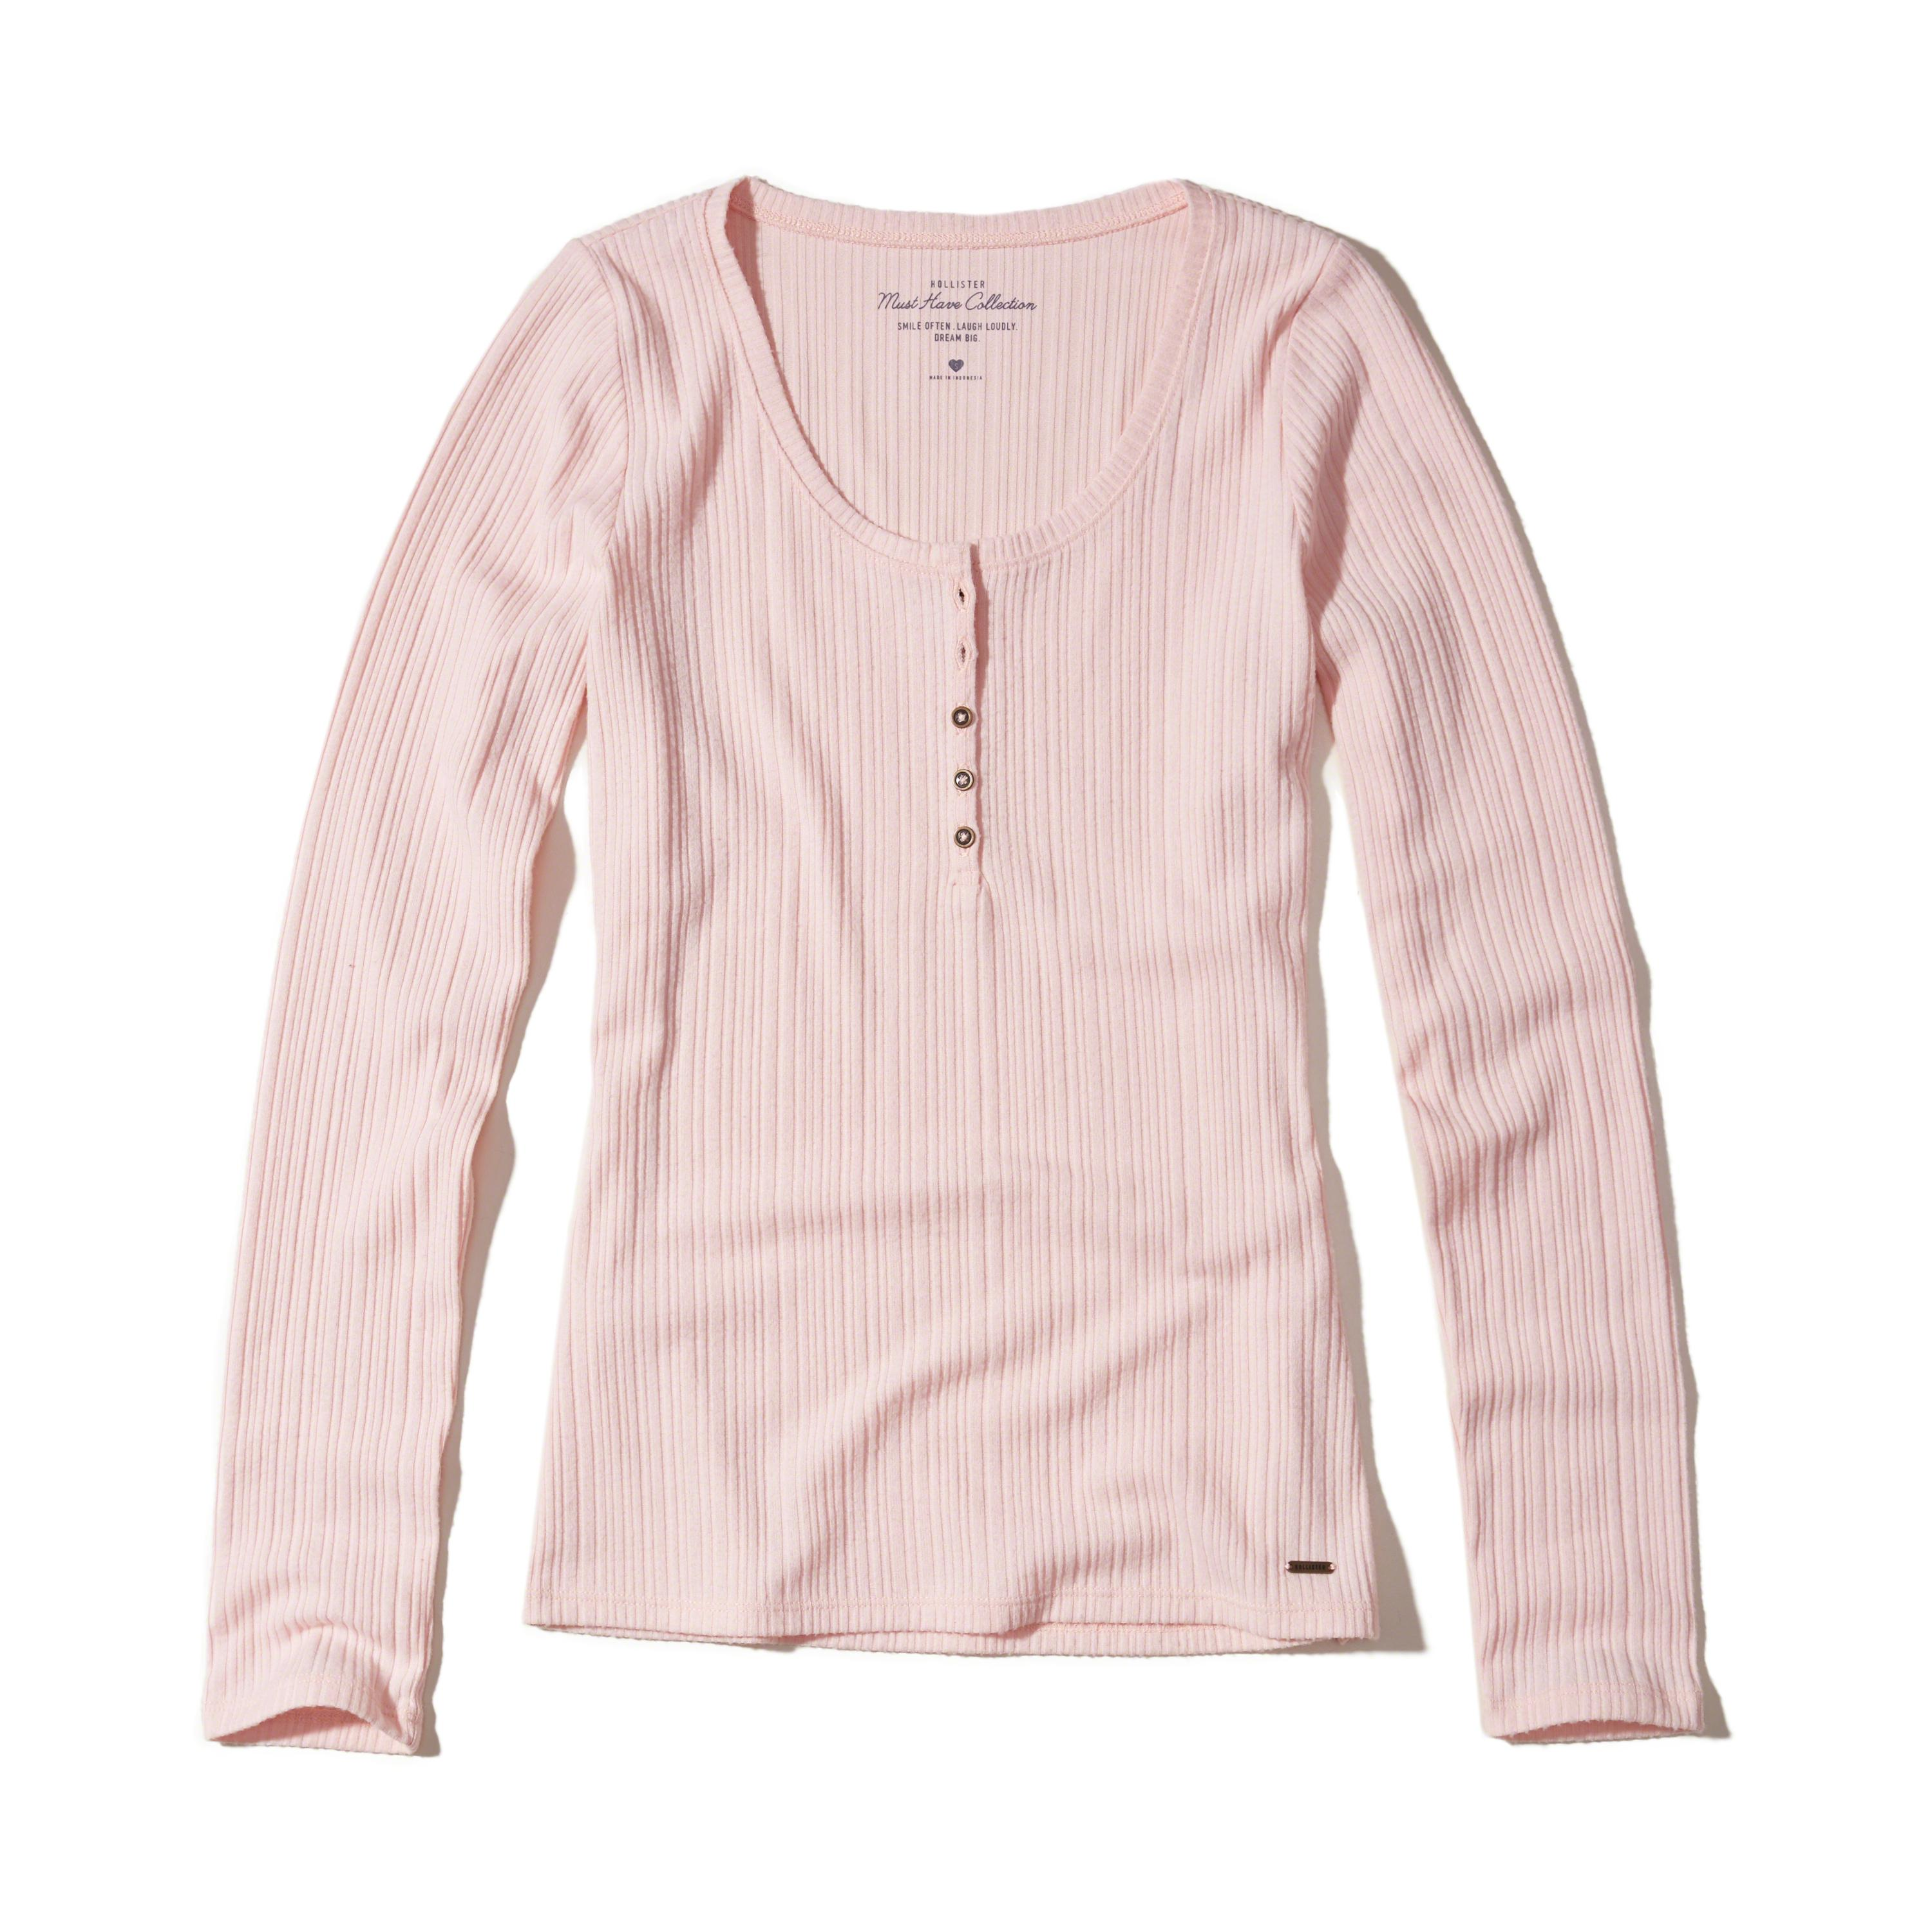 Lyst hollister must have henley t shirt in pink for Must have dress shirts